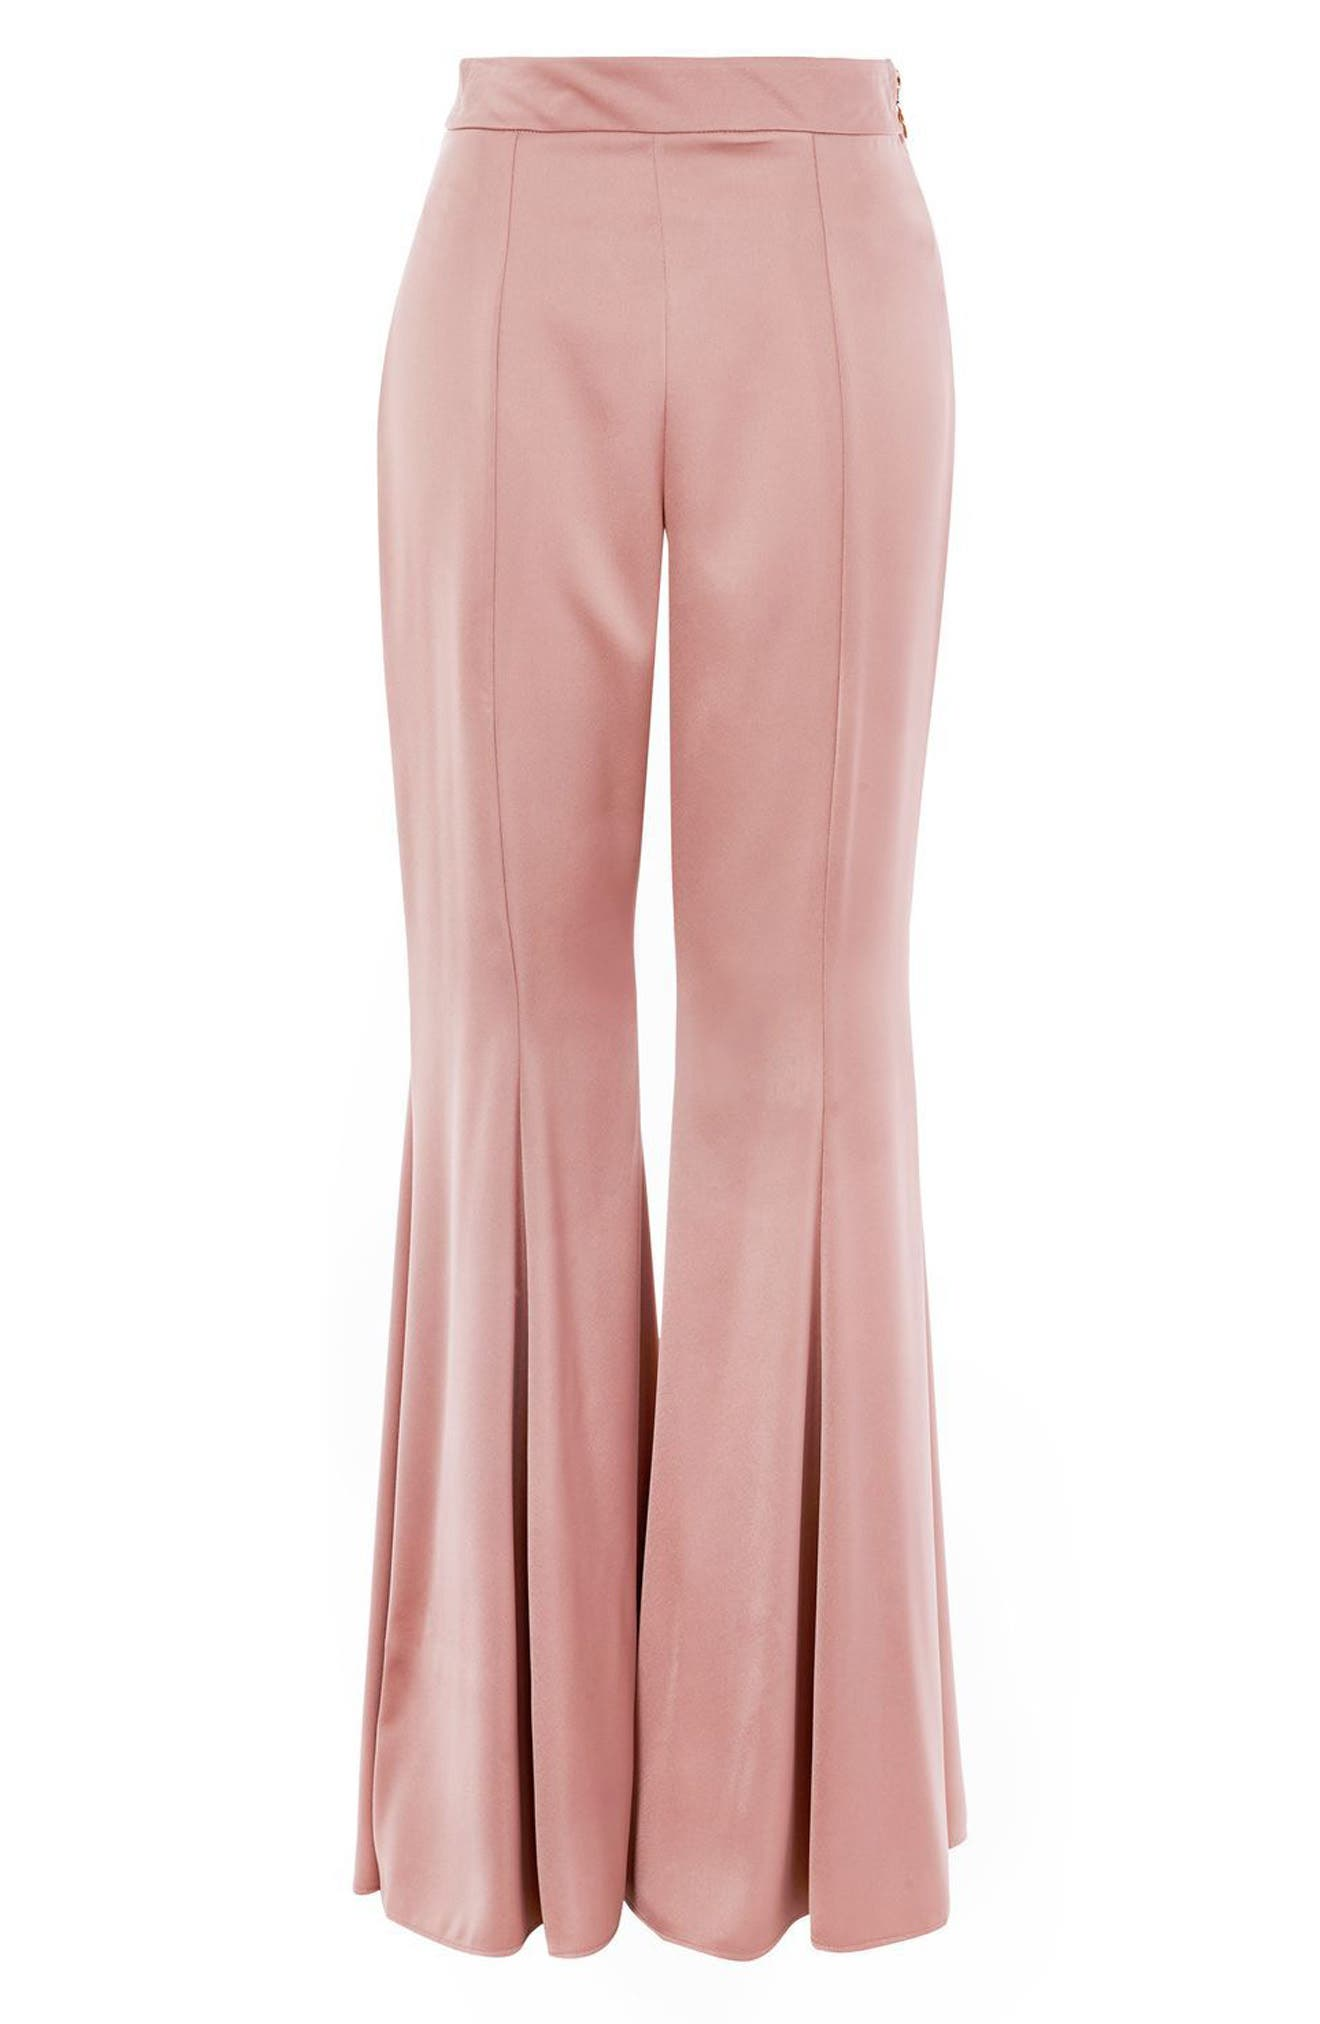 Satin Super Flare Trousers,                             Alternate thumbnail 4, color,